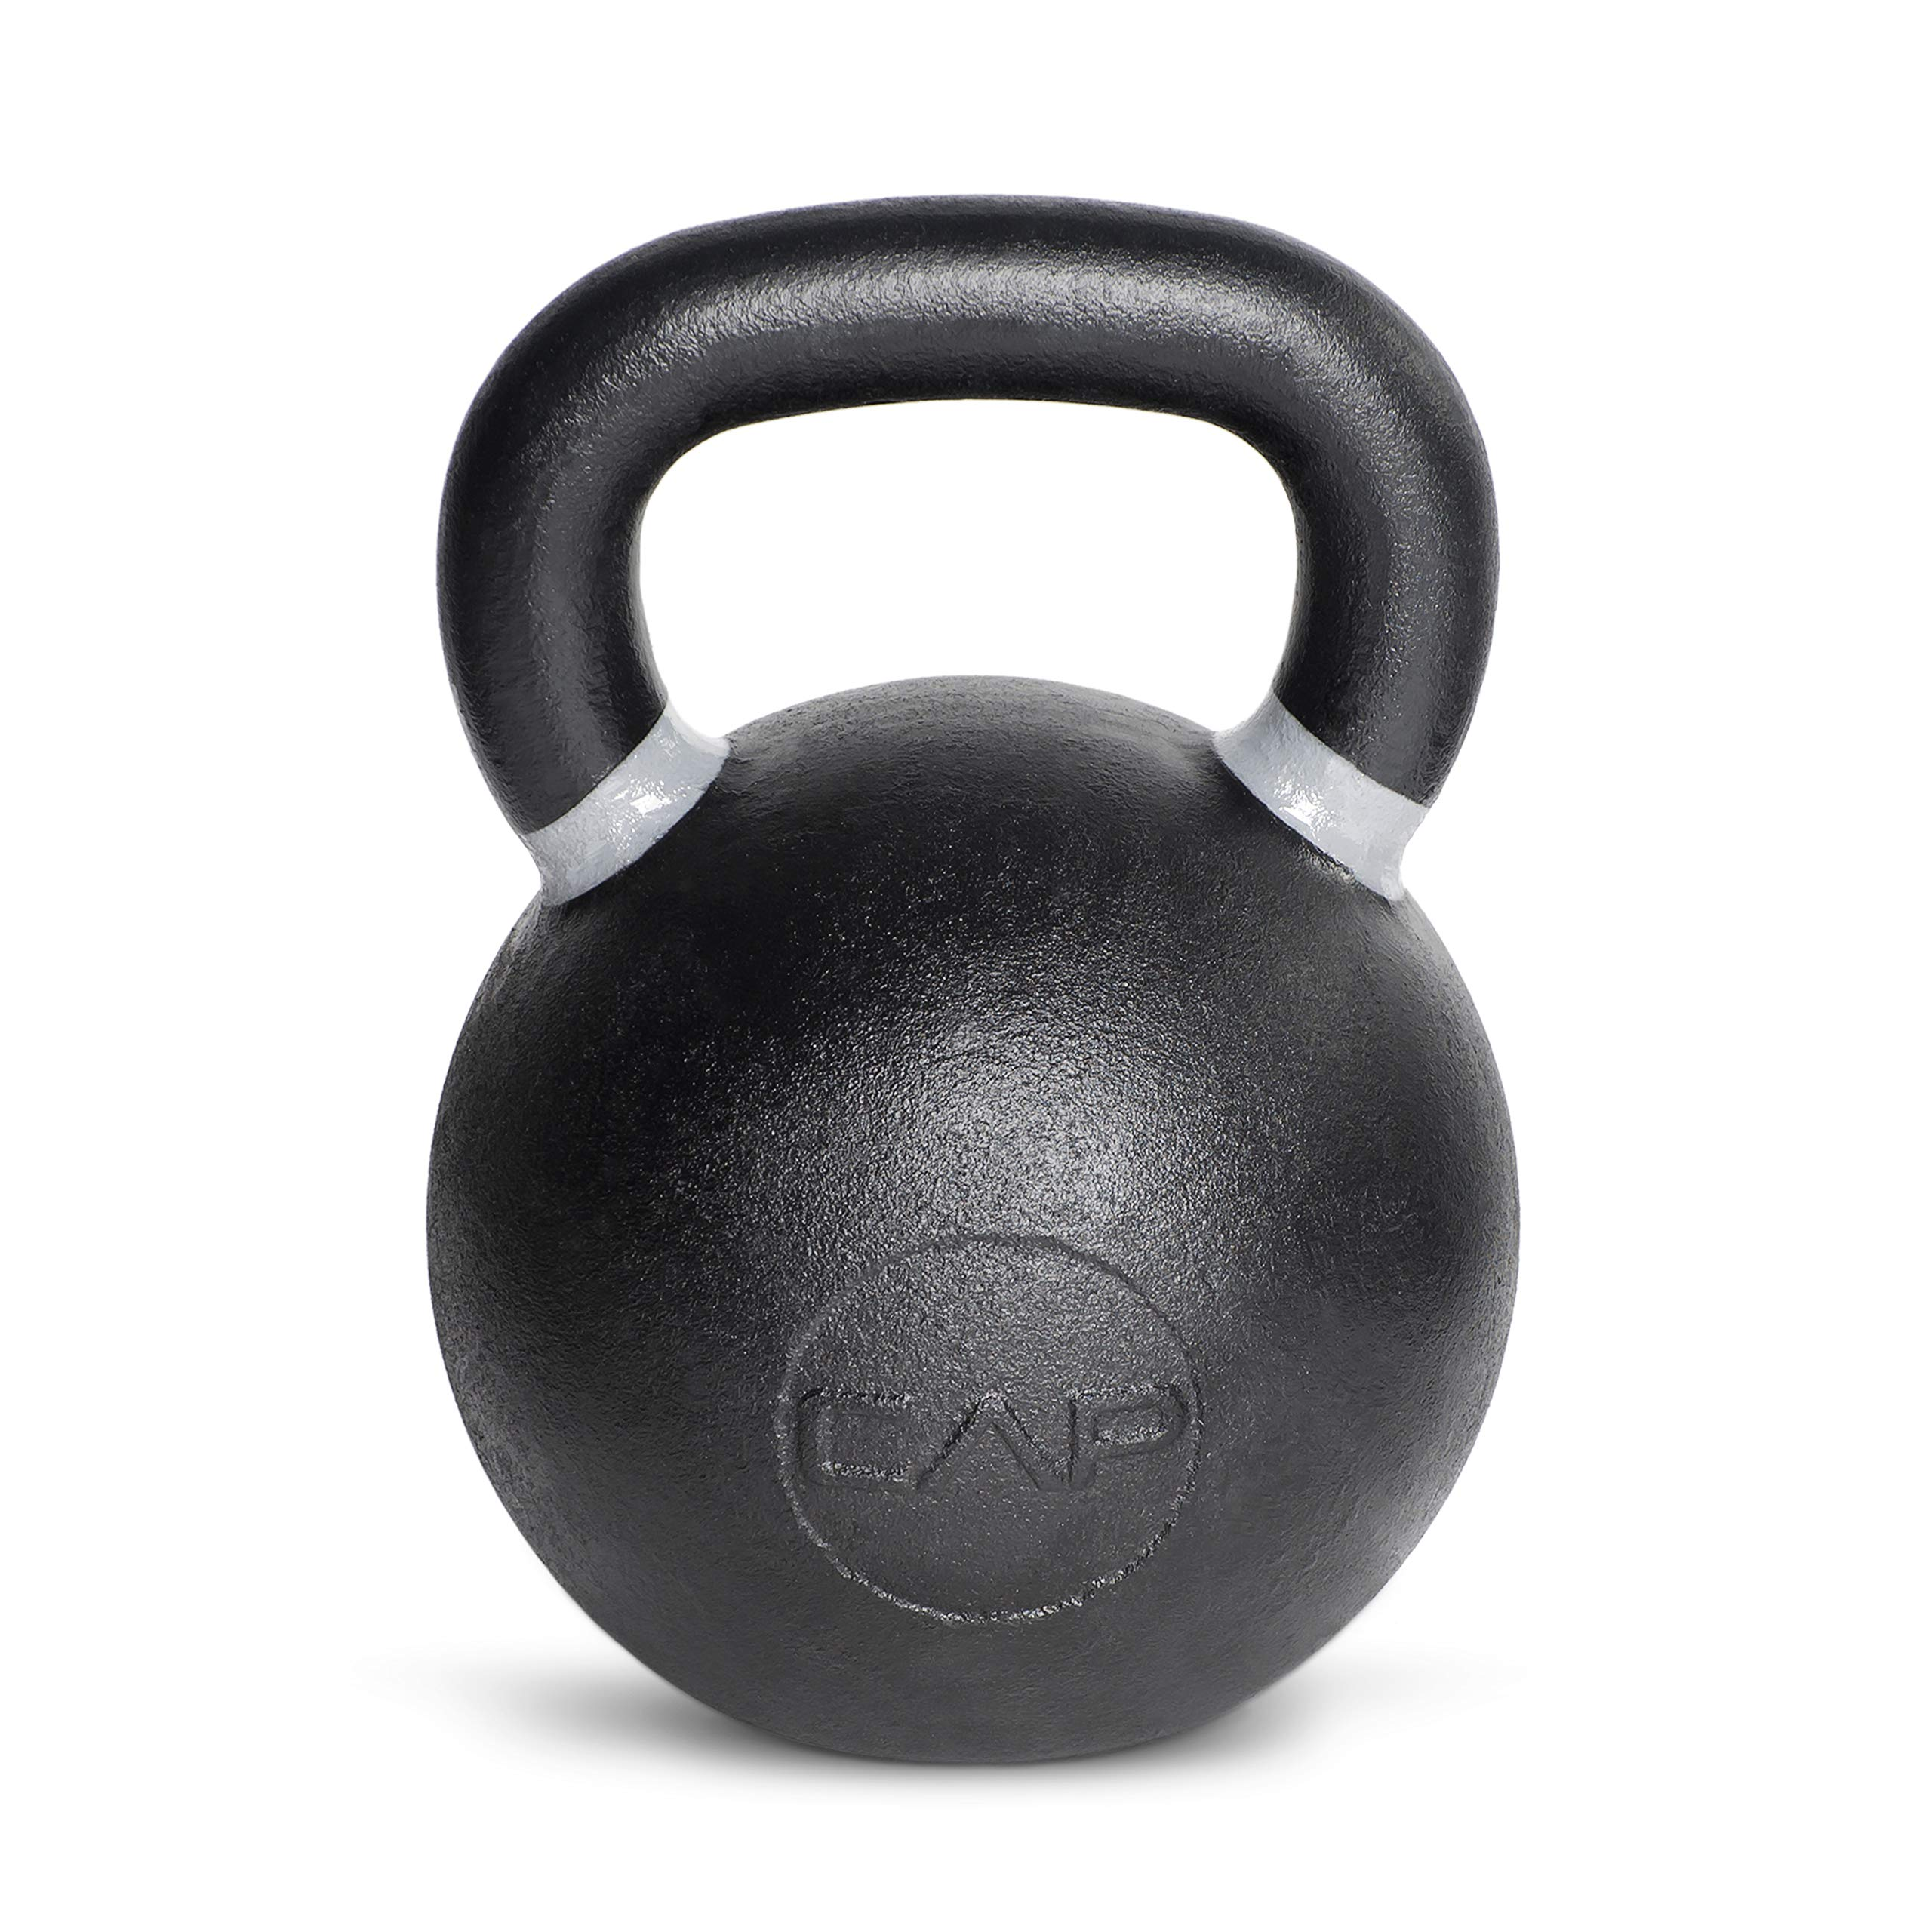 CAP Barbell Cast Iron Competition Kettlebell Weight, 80 Pound, Black/Gray